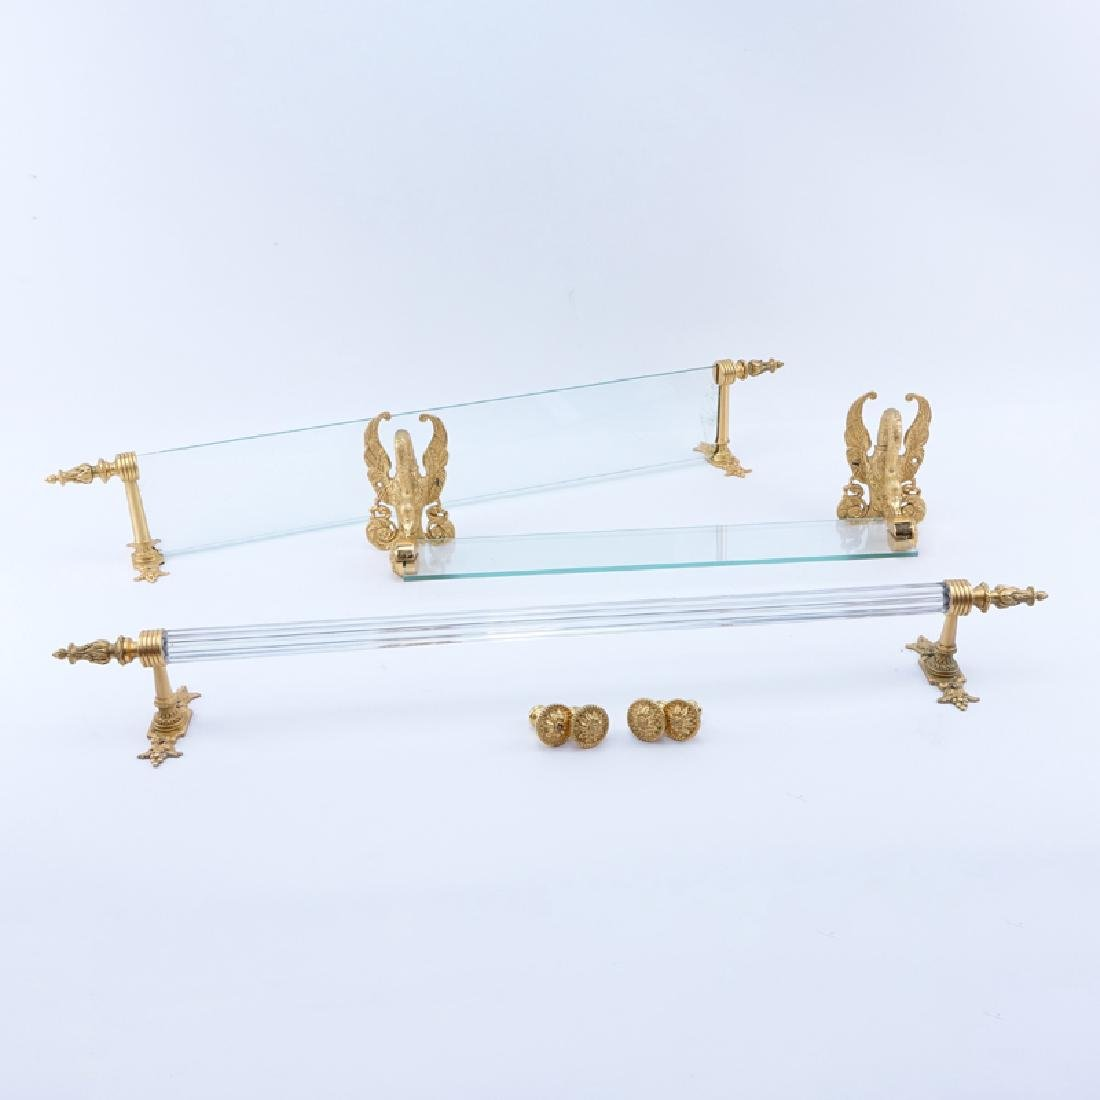 Group Lot of Sherle Wagner Gold Plated Bathroom